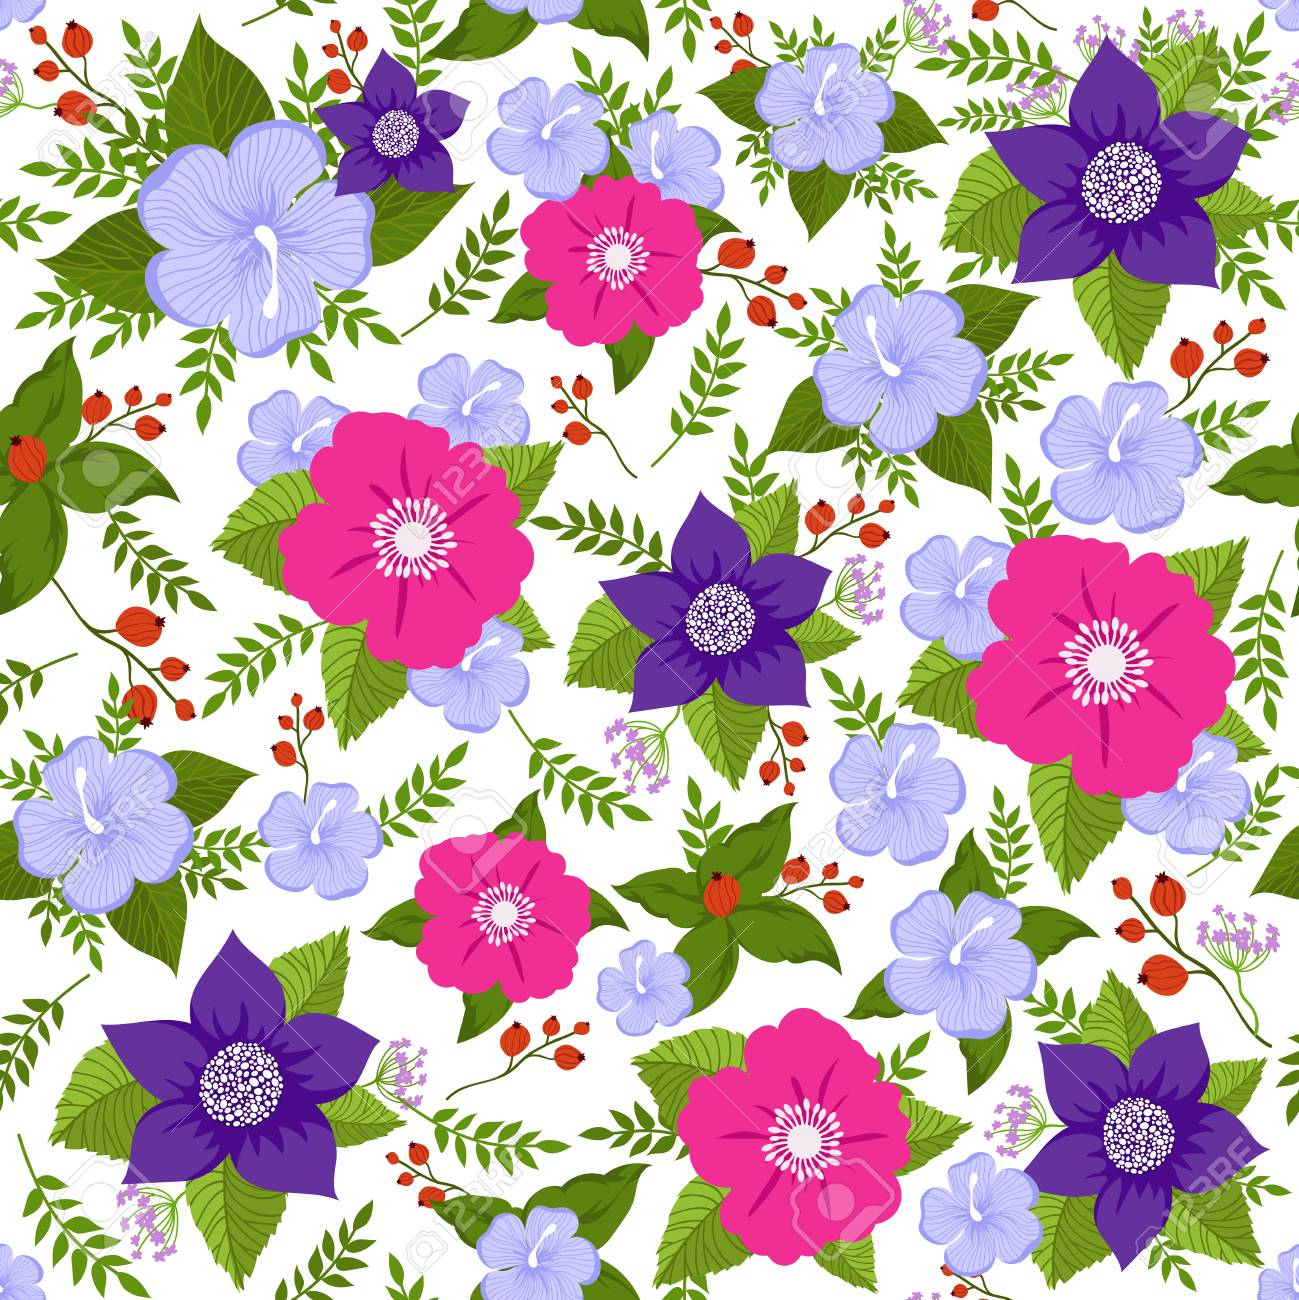 Abstract Flower Vector Seamless Background Summer Floral Endless